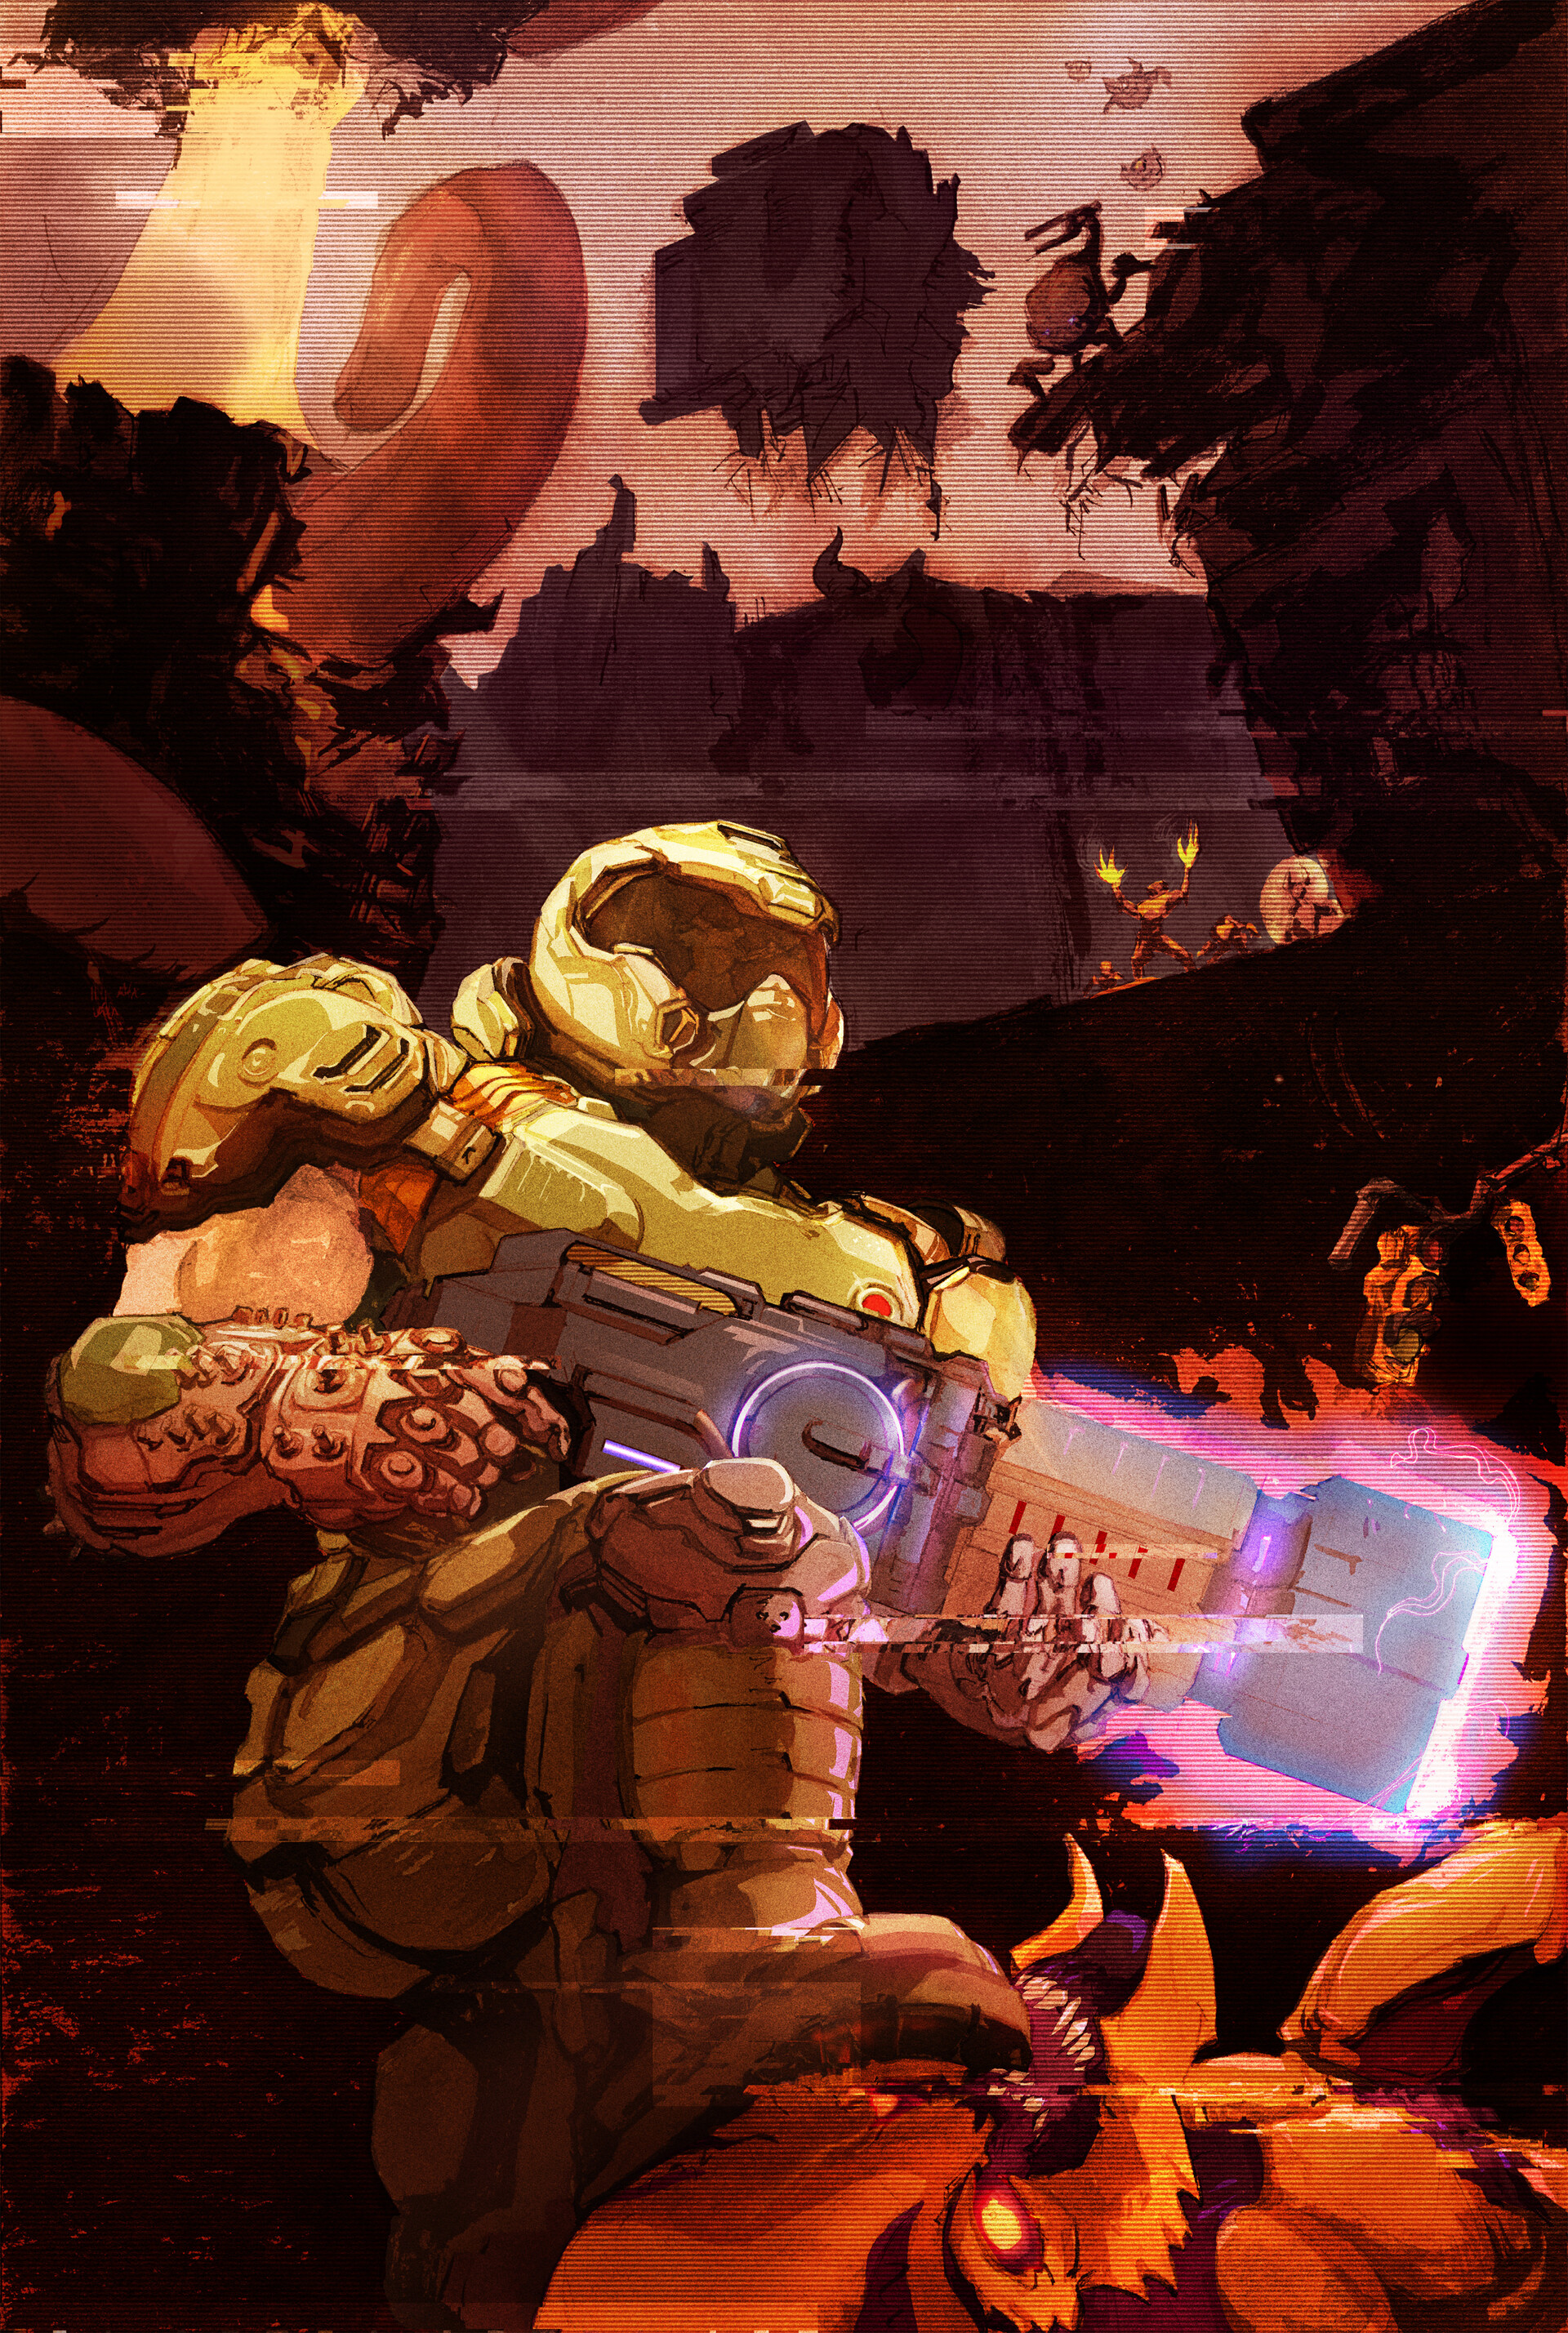 Tyler osgood doom eternal 400ppi finalbackgroundedit